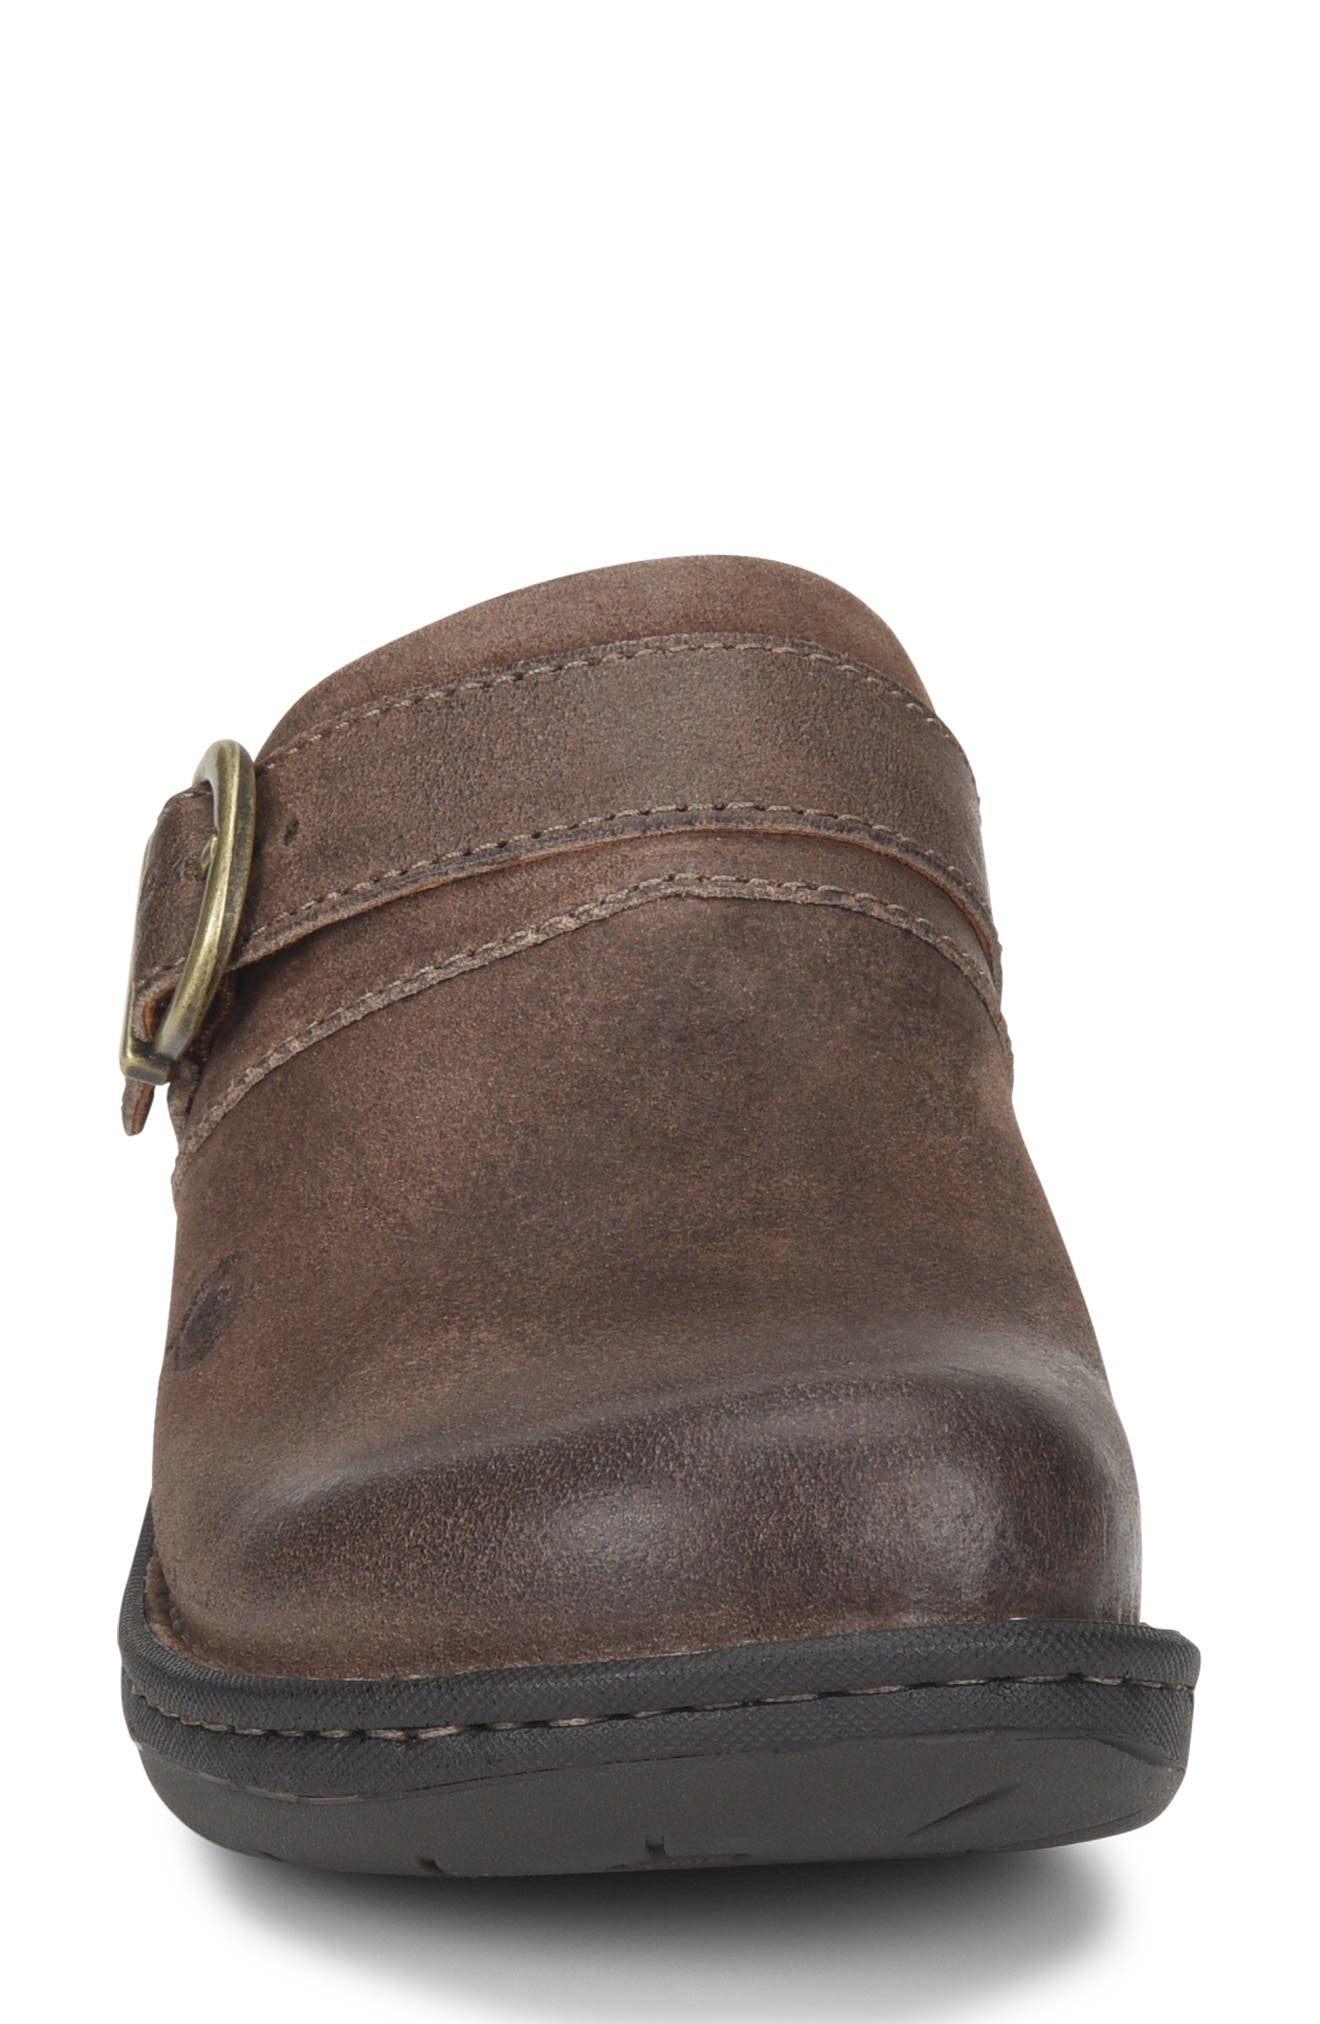 BØRN,                             Avoca Clog,                             Alternate thumbnail 4, color,                             TAUPE DISTRESSED LEATHER